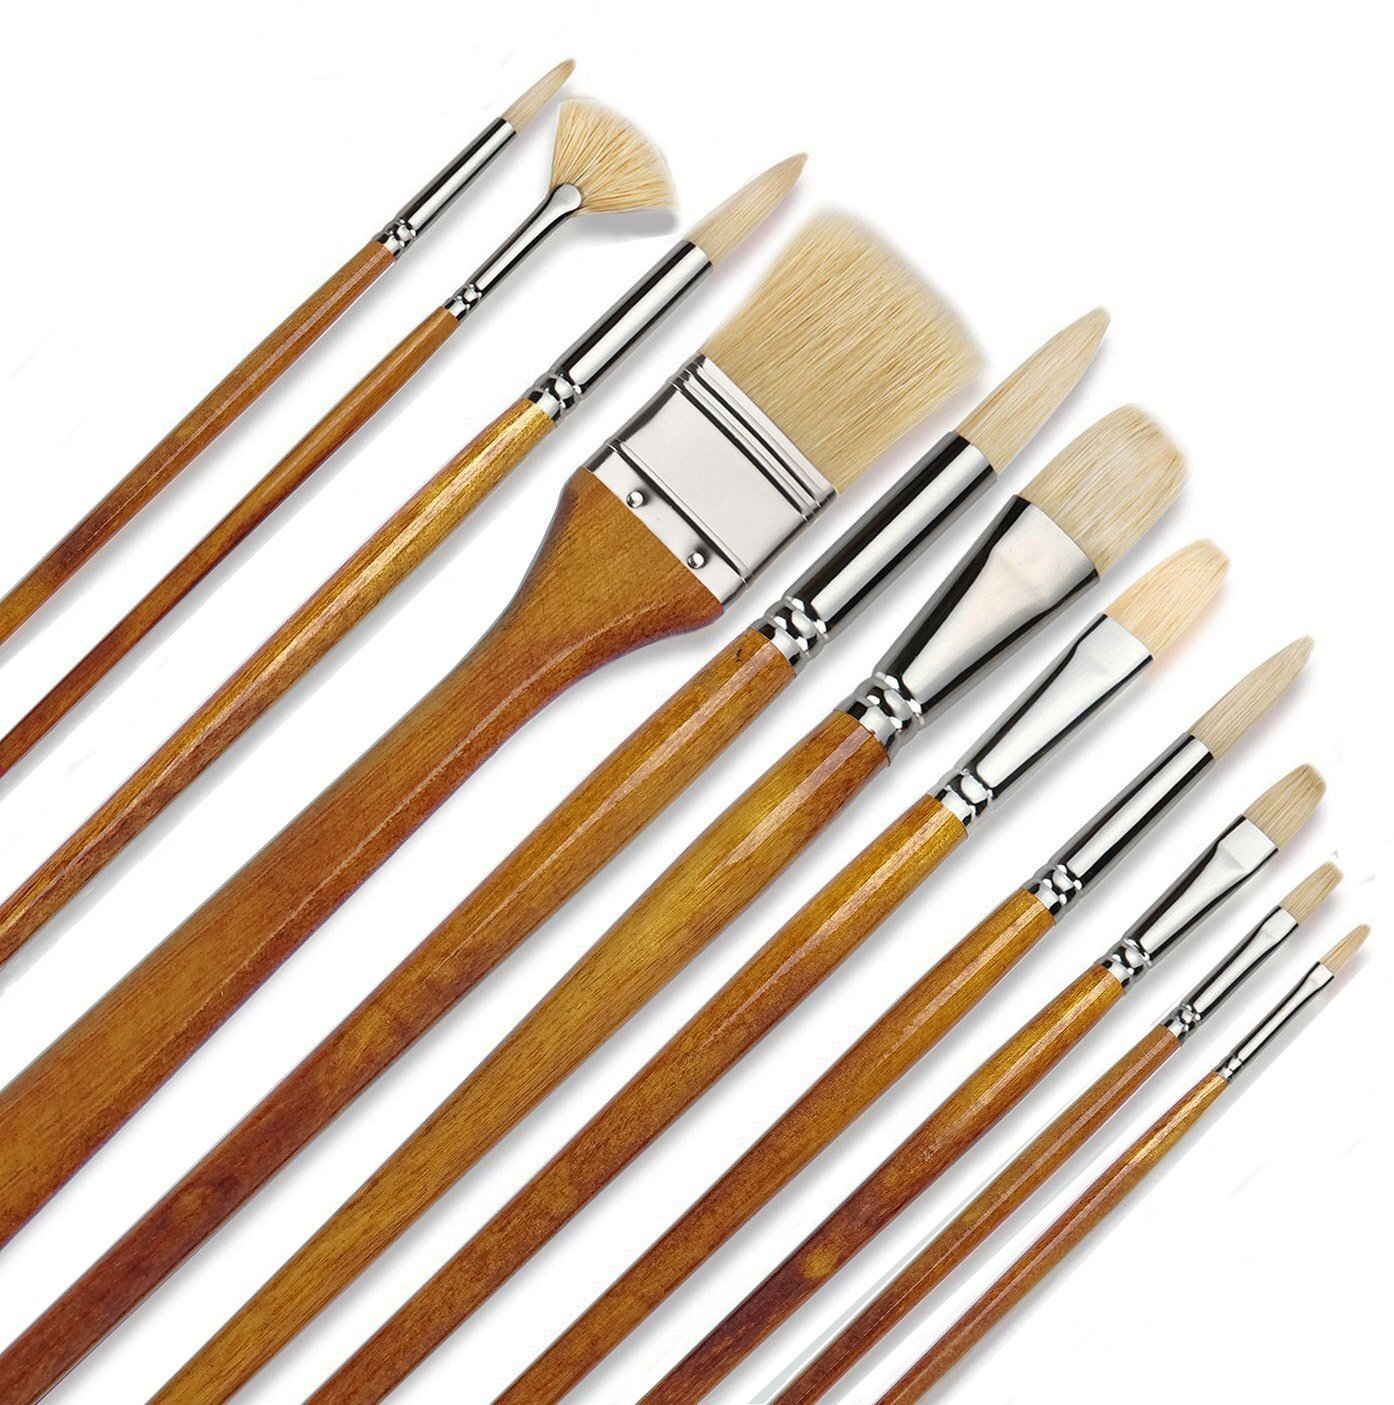 11 pcs Professional Oil & Acrylics Artist Brushes Pure Hog Bristles Lacquered Birchwood Long Handles with a Free Carrying Box Ltd